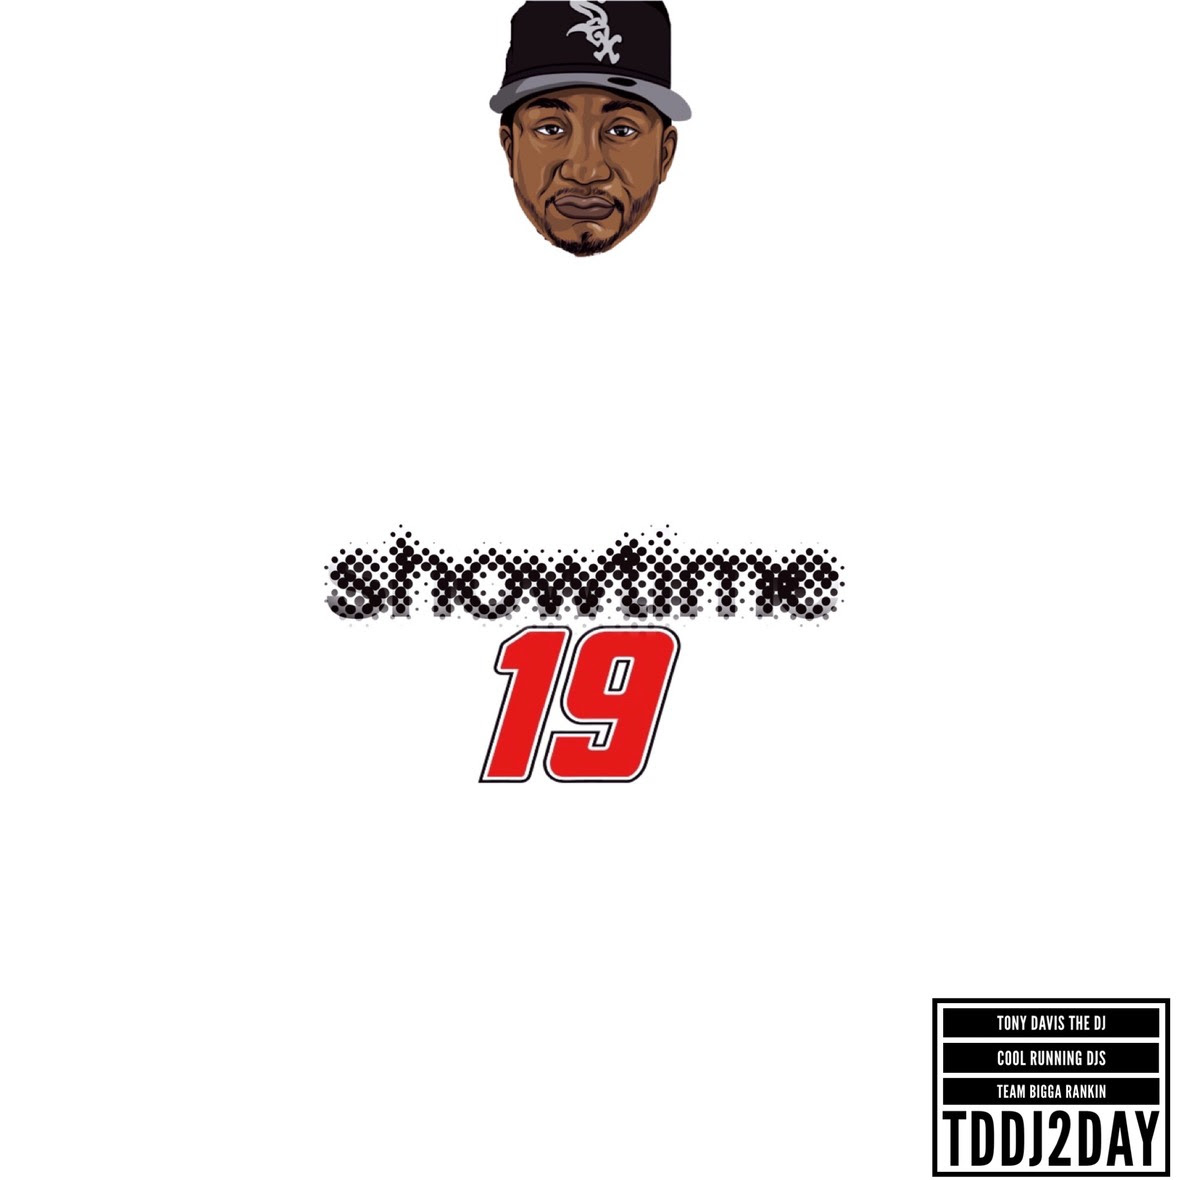 [Mixtape] Showtime 19 hosted by Tony Davis The DJ